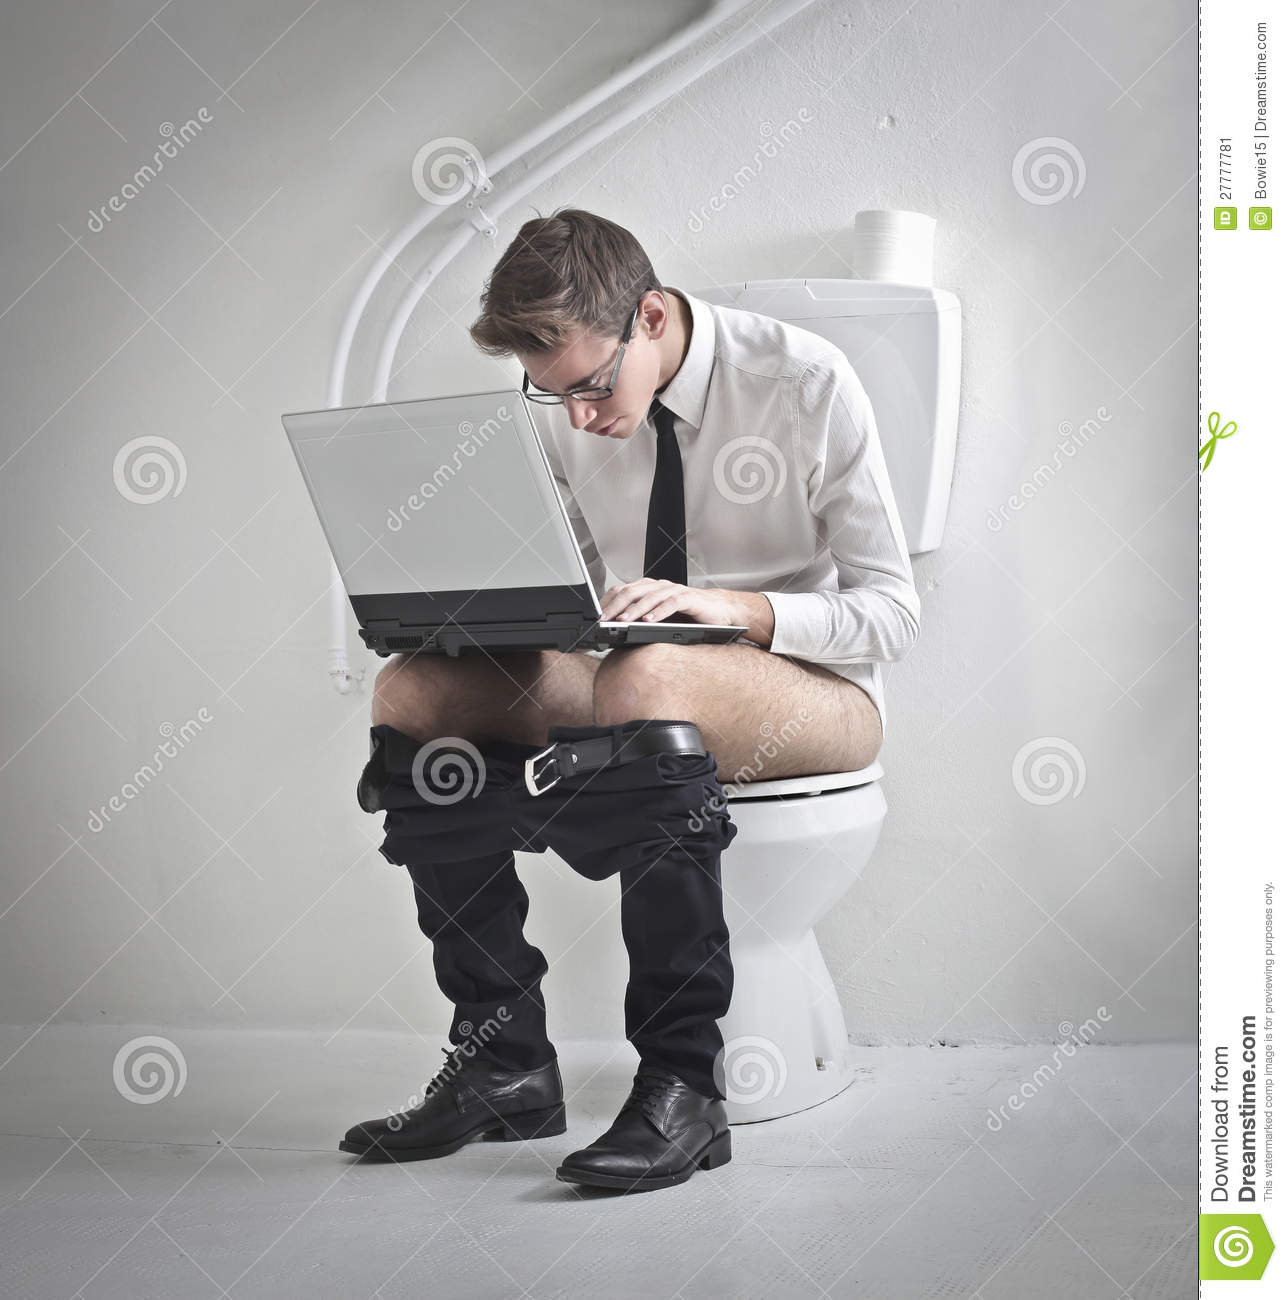 Laptop On The Toilet Stock Image Image Of Computer Work